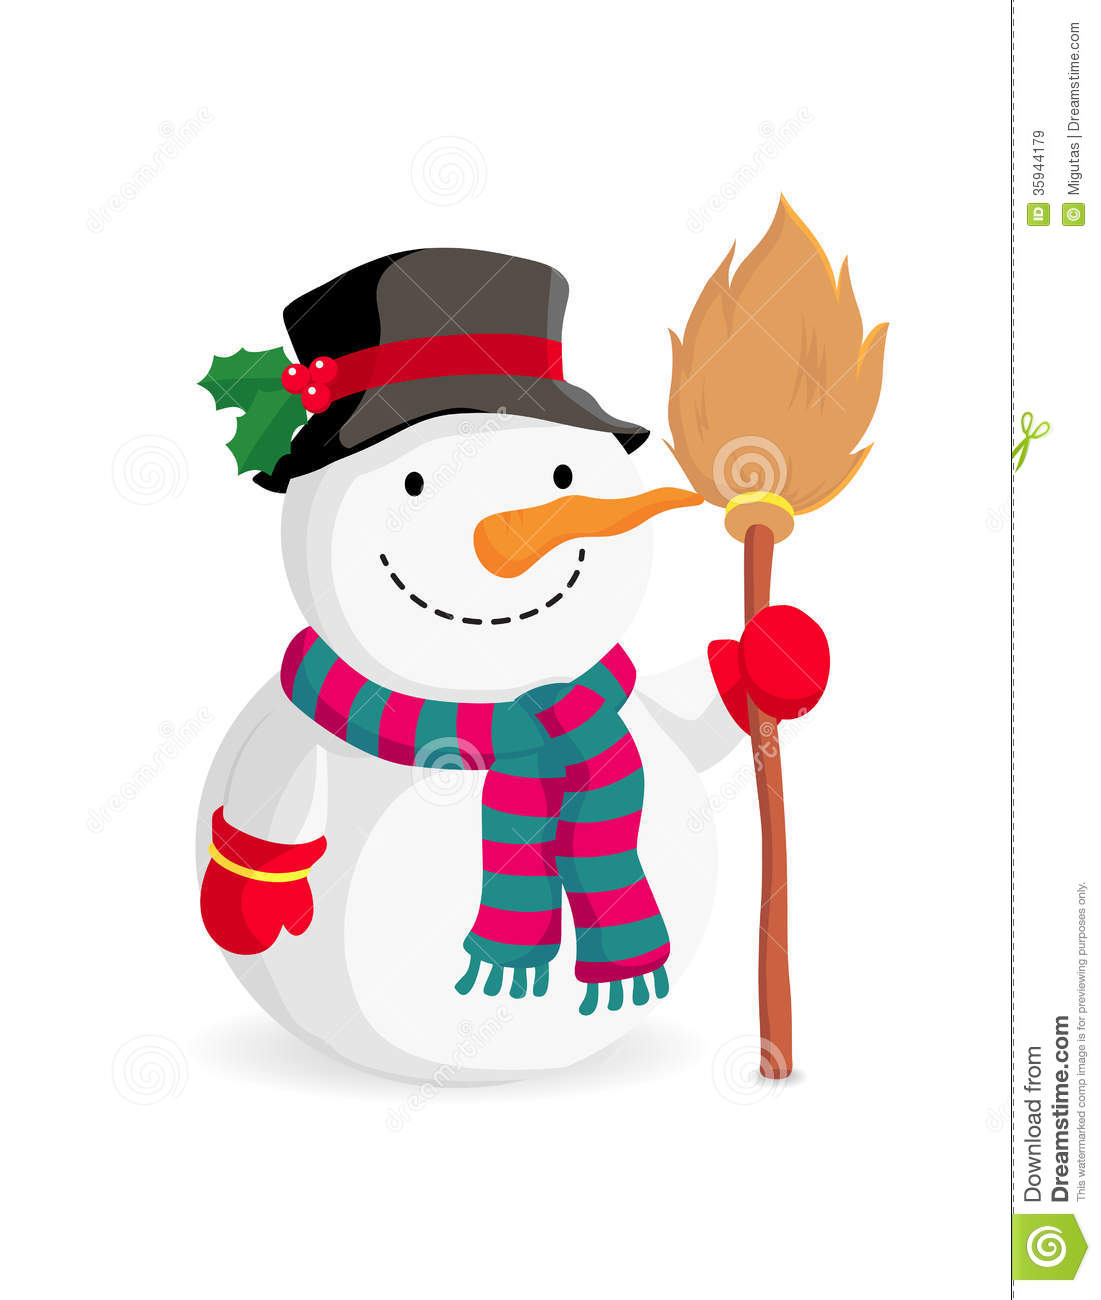 Cartoon Snowman Royalty Free Stock Images - Image: 35944179